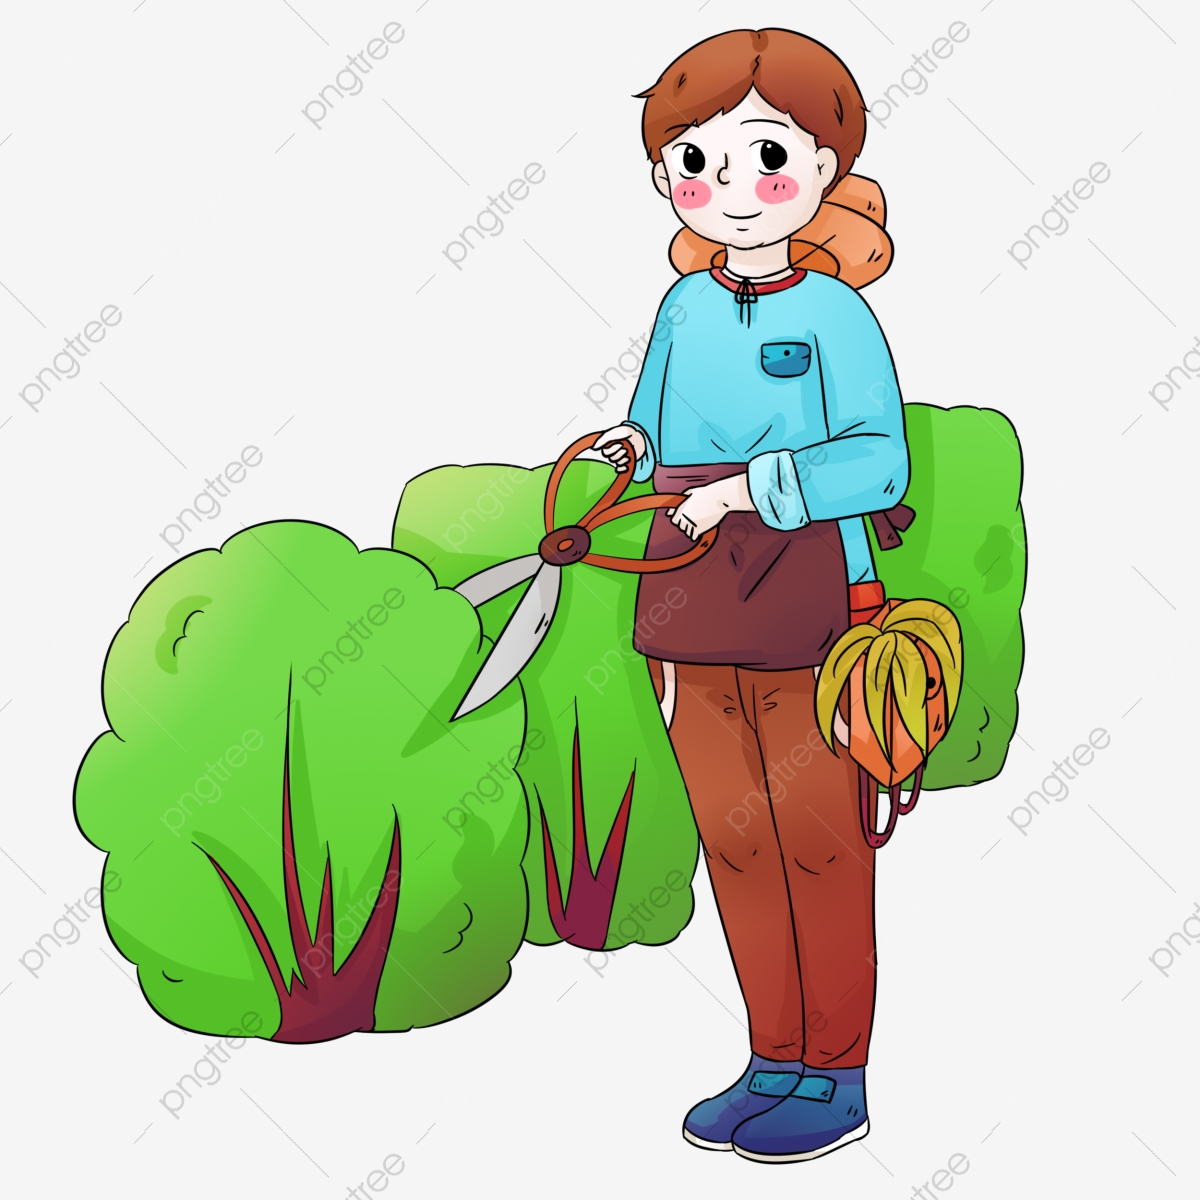 Hand Painted Cut Green Hand Drawn Gardening Outdoor Mowing Gardening Cartoon Png Transparent Clipart Image And Psd File For Free Download